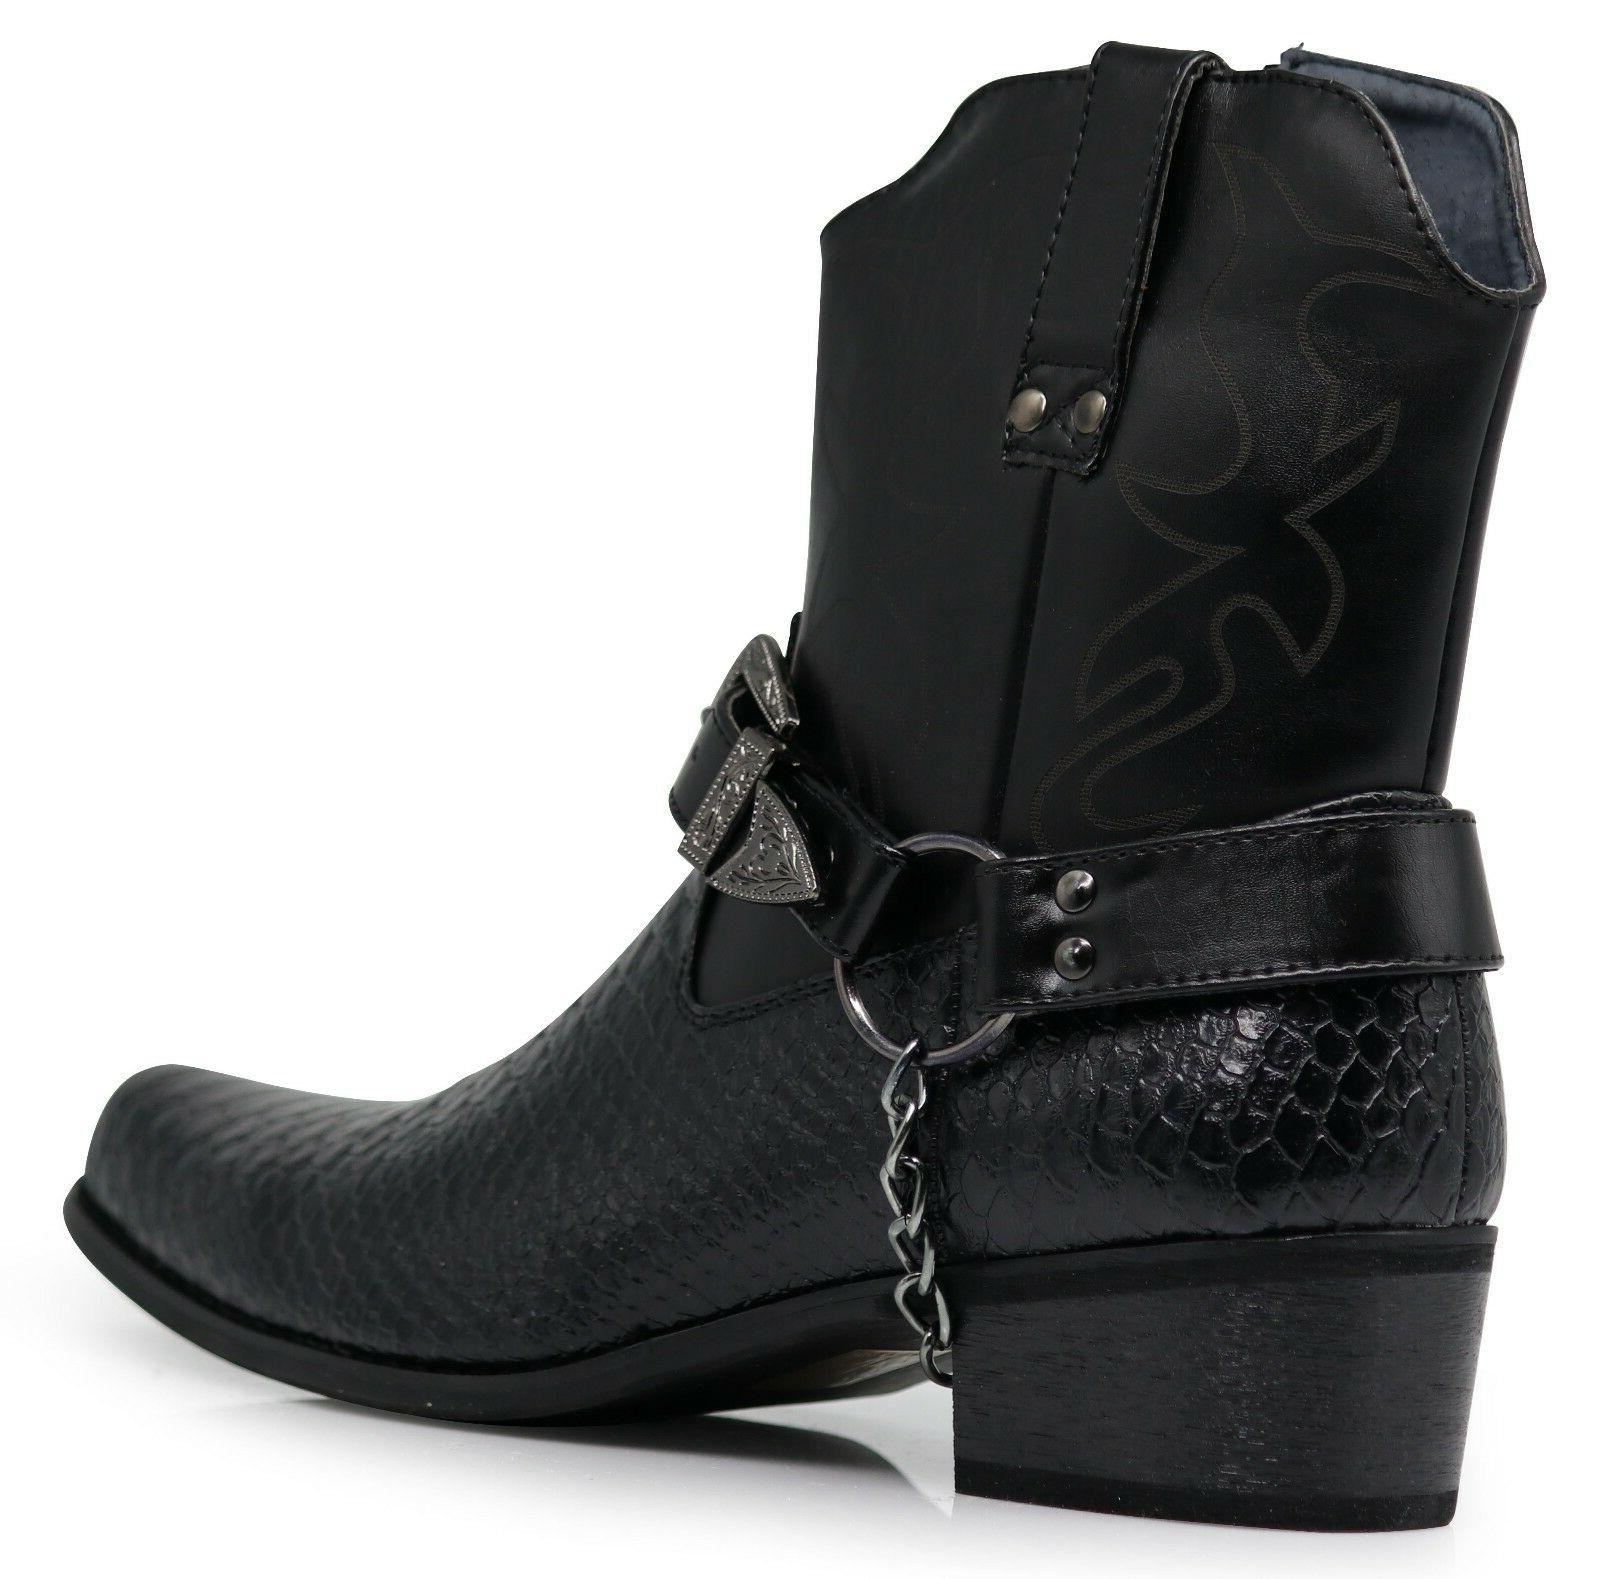 Men Cowboy Western Boots Shoes Leather Motorcycle Print